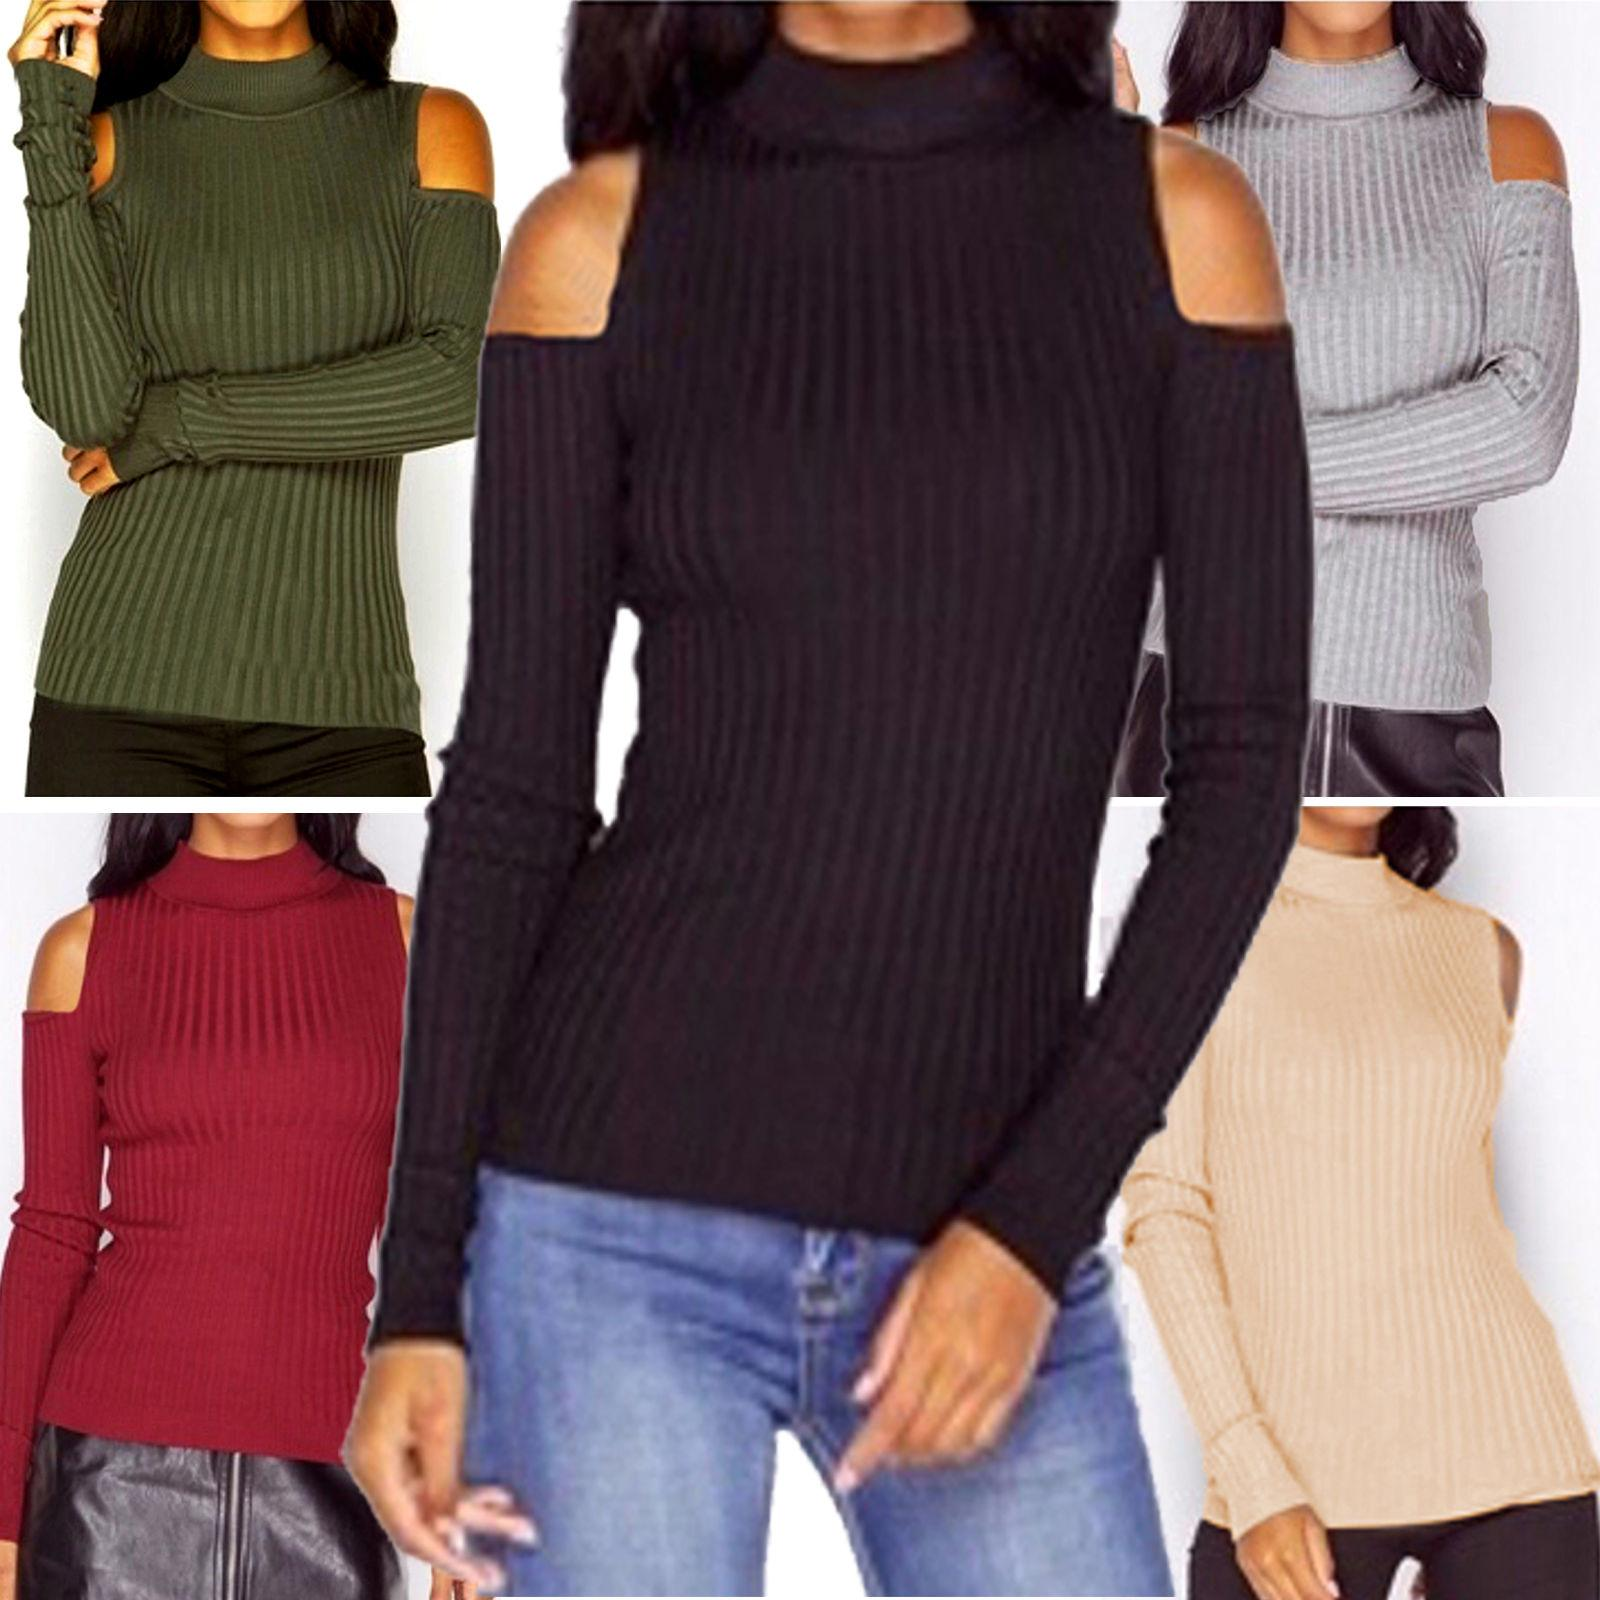 1201a63ff7e048 2019 Casual Womens Ladies Cold Shoulder Cable Chunky Knitted Sweatshirt Ribbed  Pullover High Turtle Neck Long Sleeve Jumper Tops Knitwear From Erinzhang